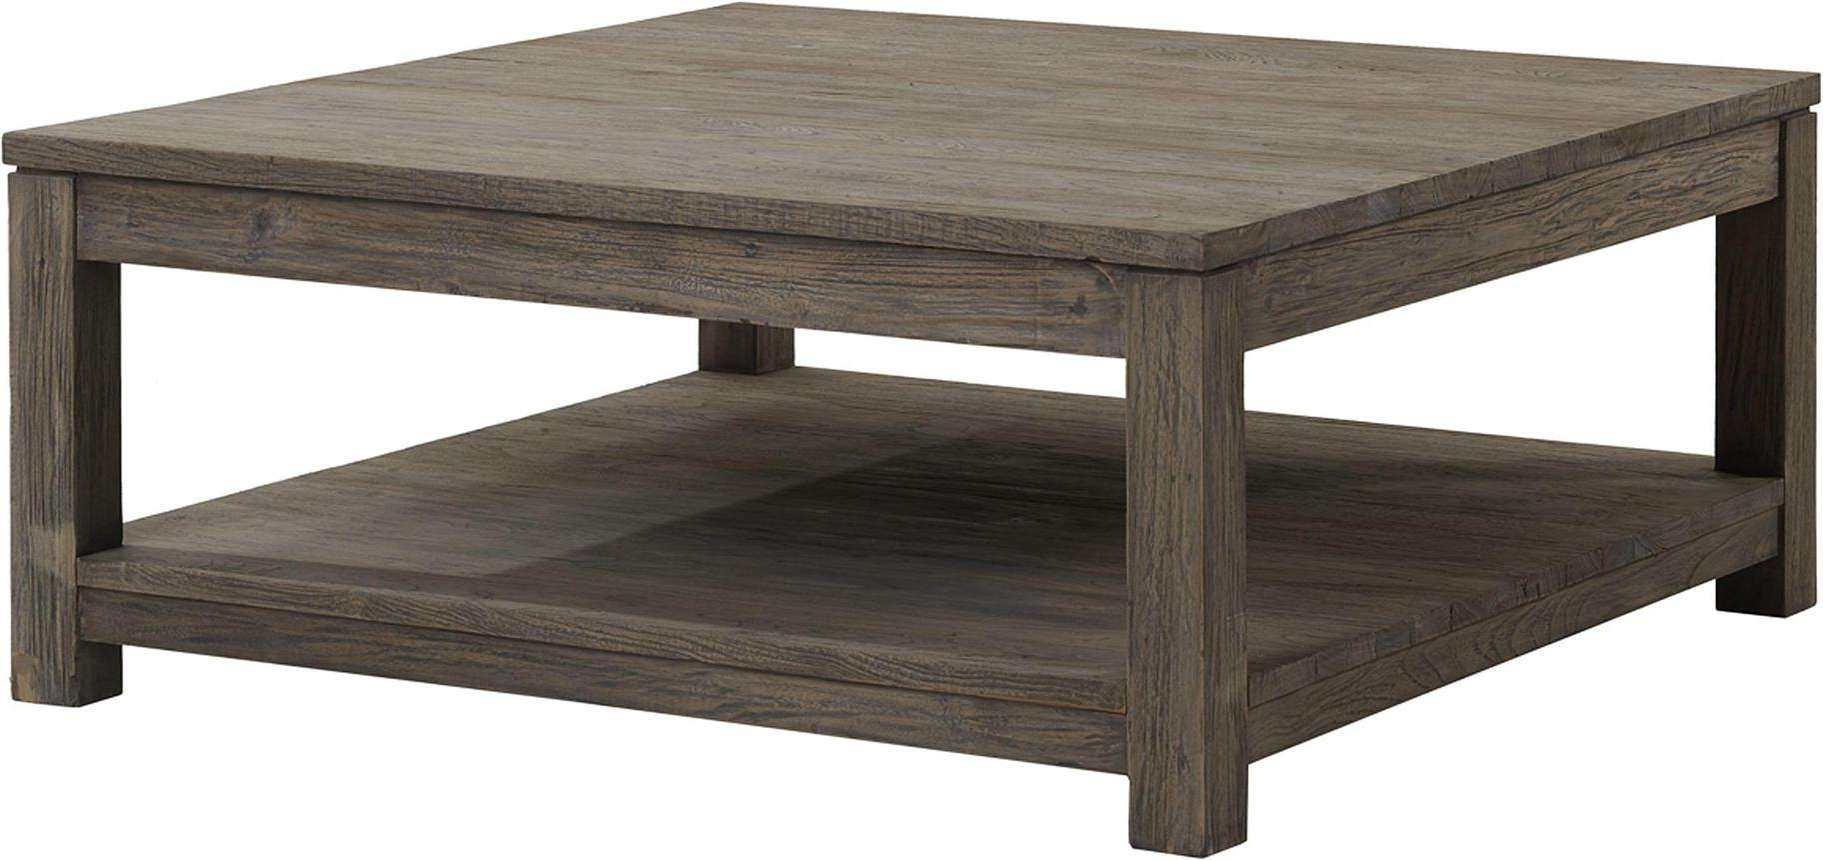 Preferred Square Wooden Coffee Table Intended For Large Square Coffee Table Increasing Interior Elegance – Ruchi Designs (View 6 of 20)